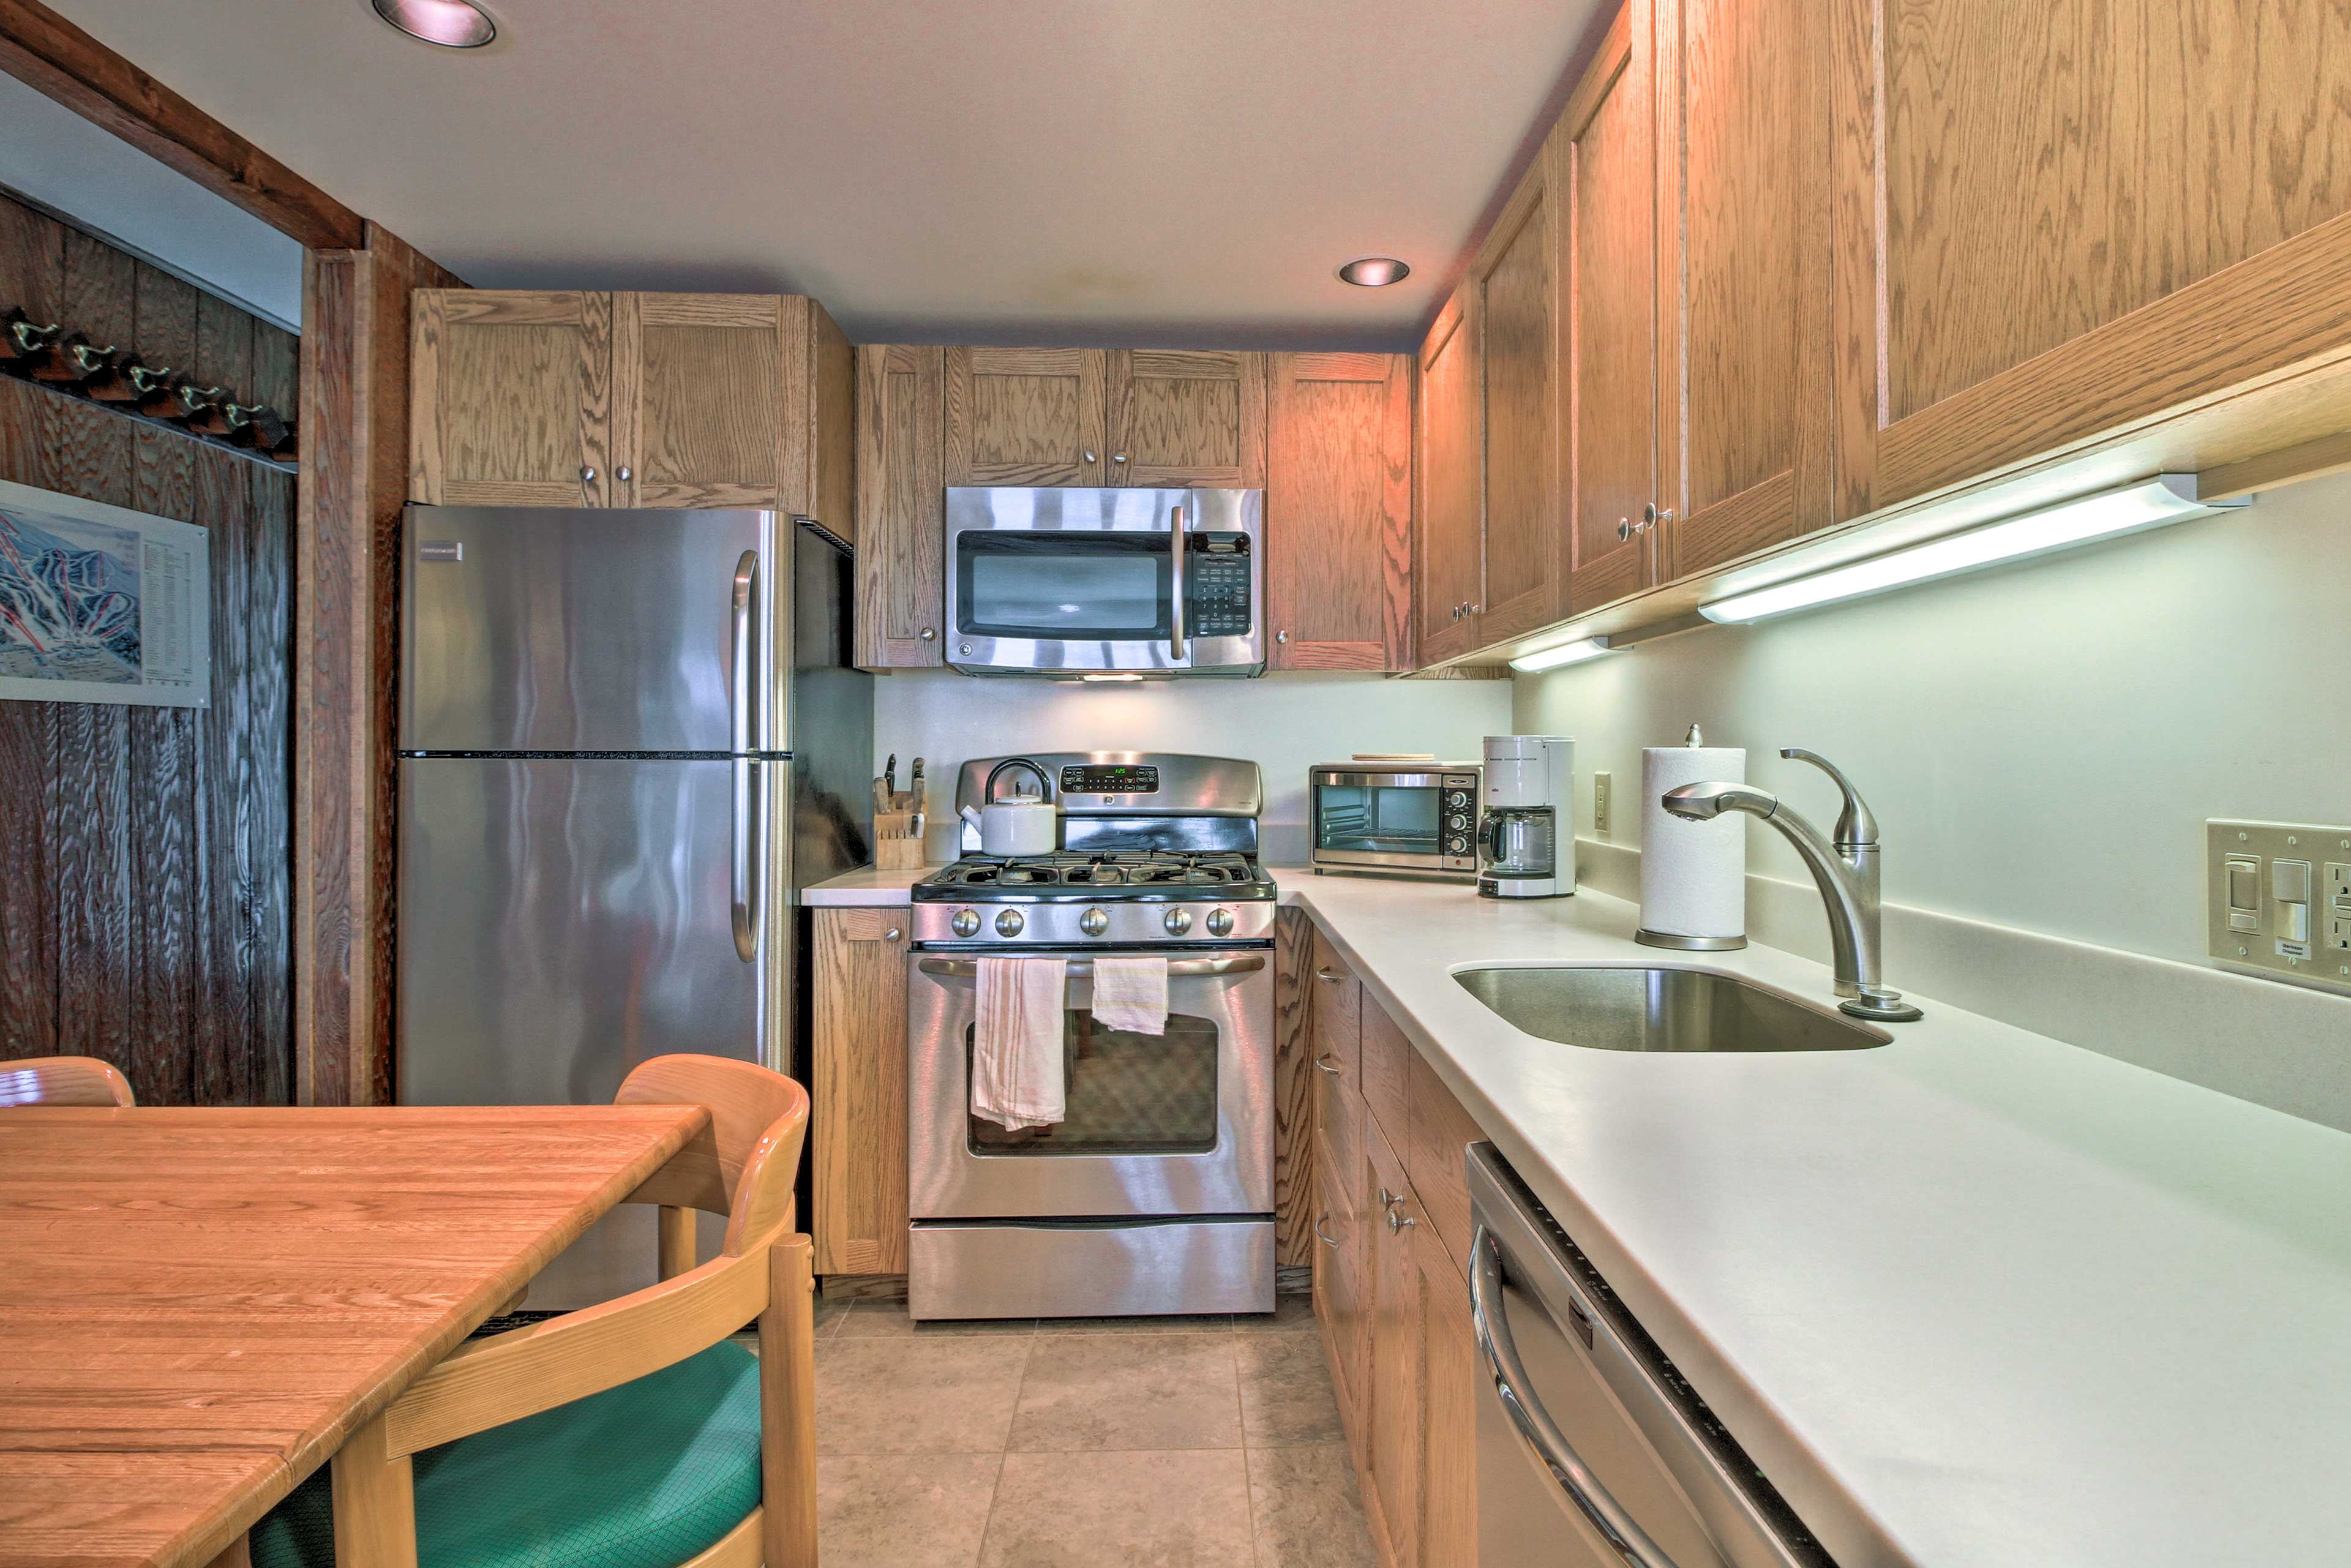 Make all of your meals in the fully equipped kitchen.